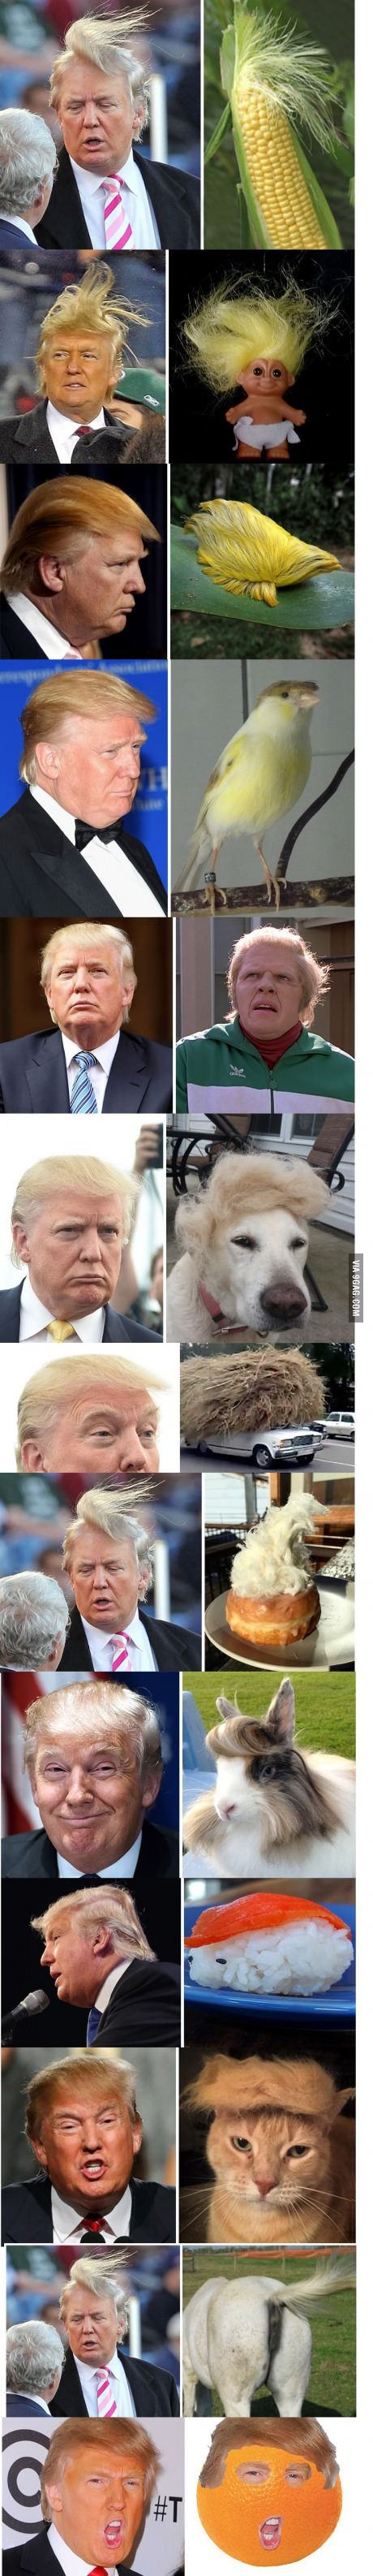 15 Things That Just Look Like Donald Trump, Who Wore It Better?                                                                                                                                                                                 More